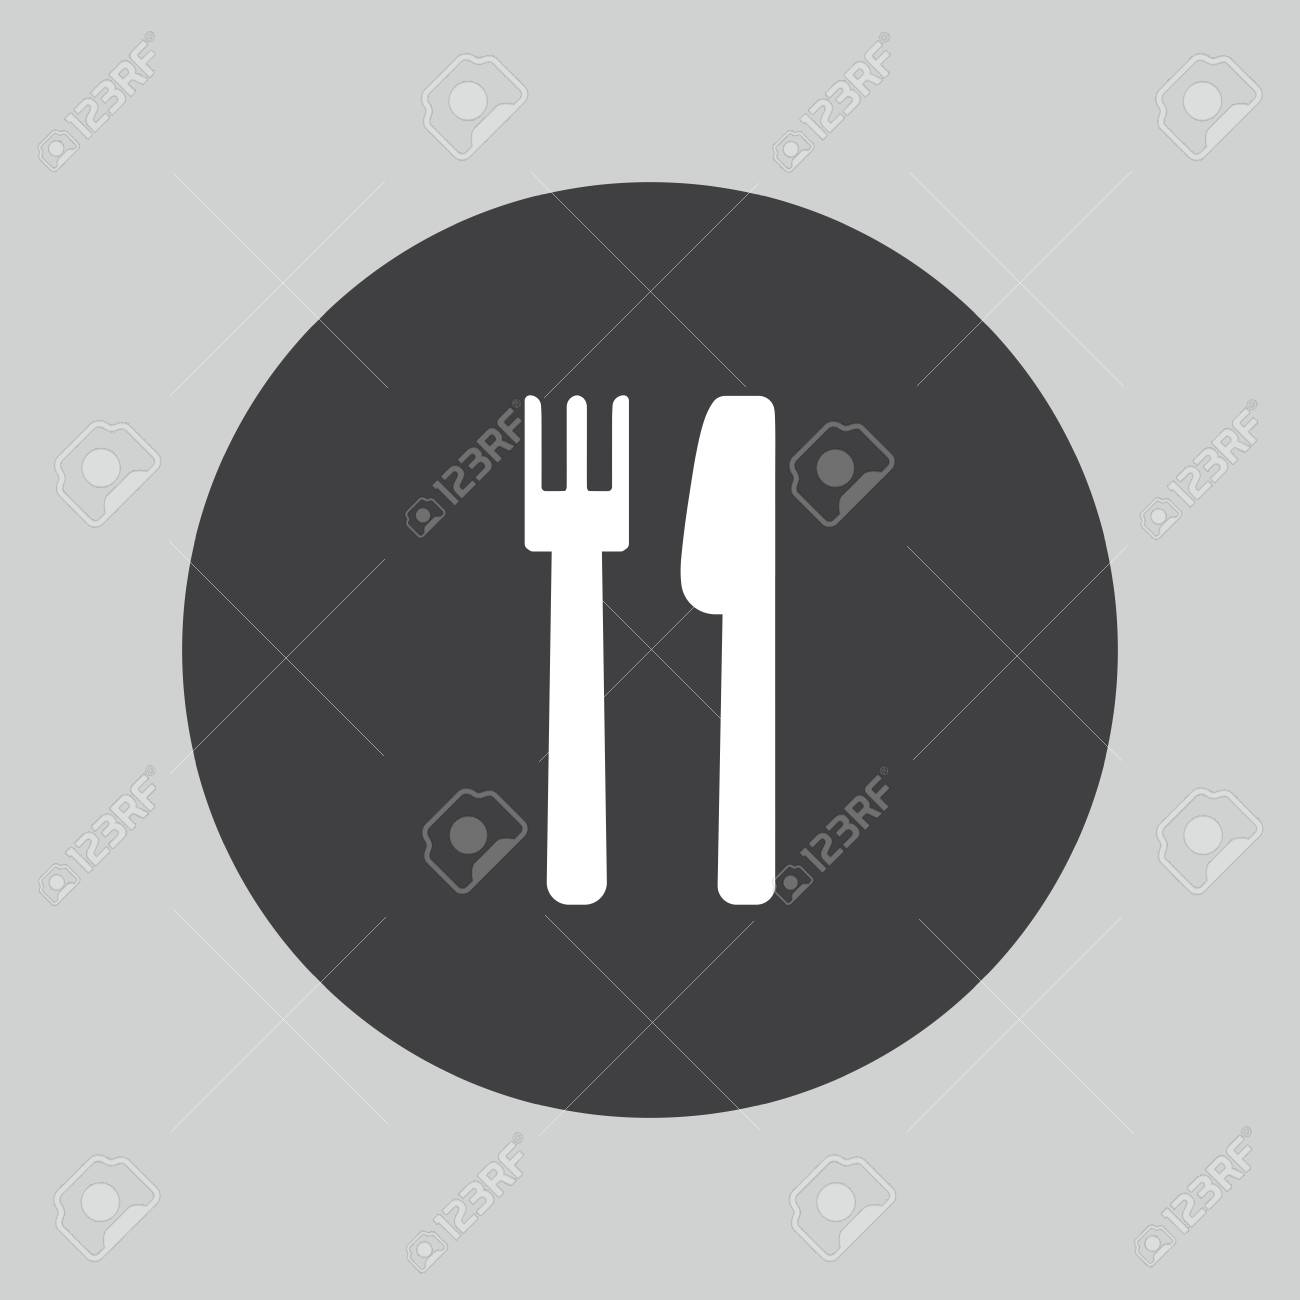 Eat Sign Icon Knife And Fork Symbol Royalty Free Cliparts Vectors